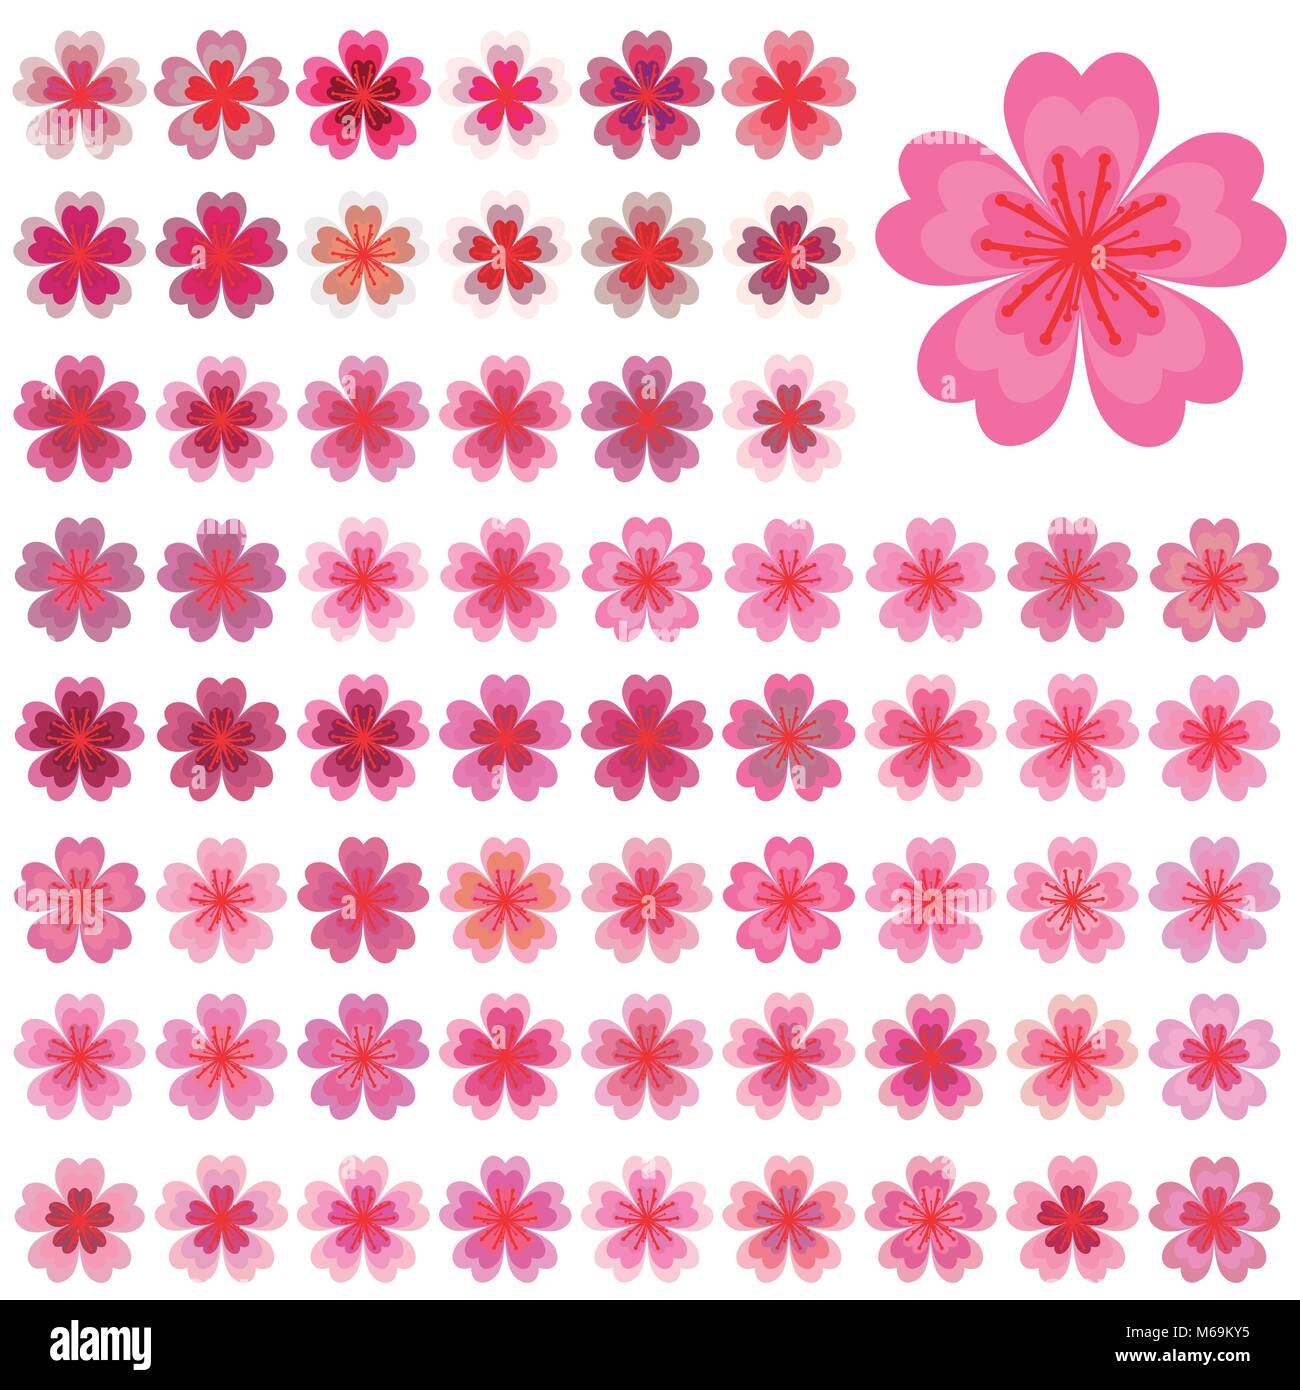 Isolated Flowers Of Sakura Set Cartoon Pink And White Blossoms Of